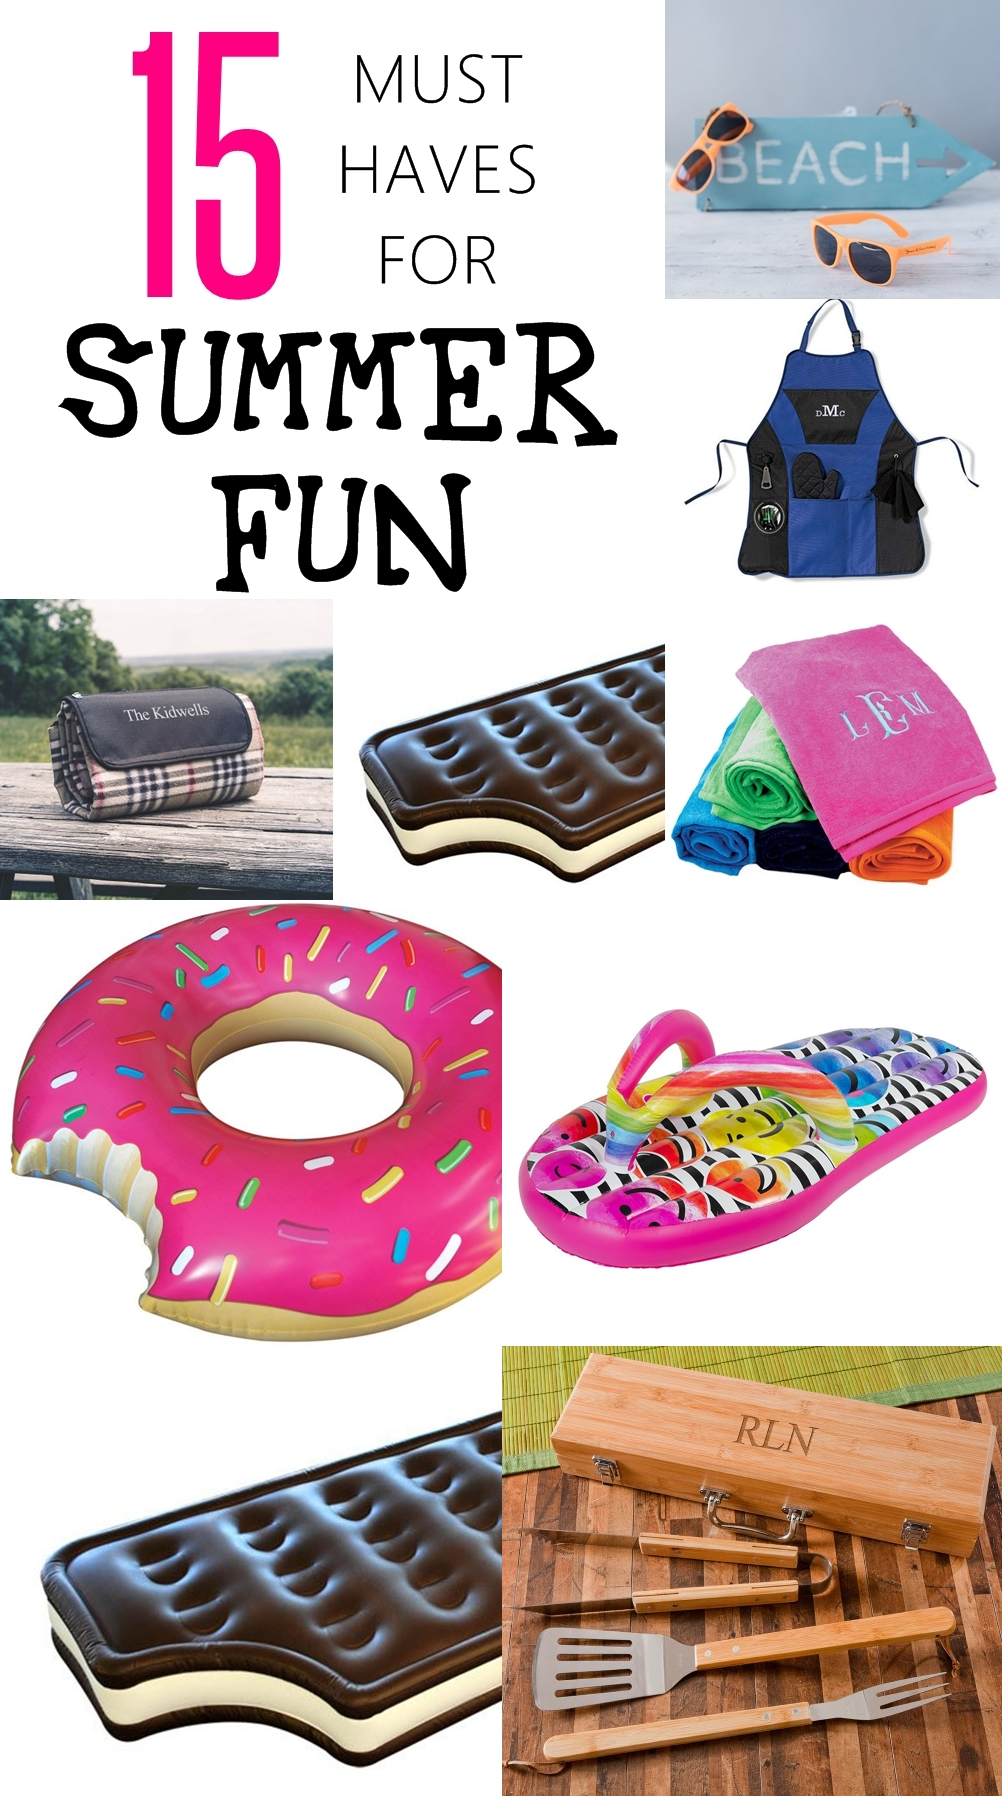 15 must haves for summer fun! Looking to make your summer truly FUN and memorable? Check out these AWESOME summer must haves! Giant doughnut floats and much more. CHECK OUT NOW!